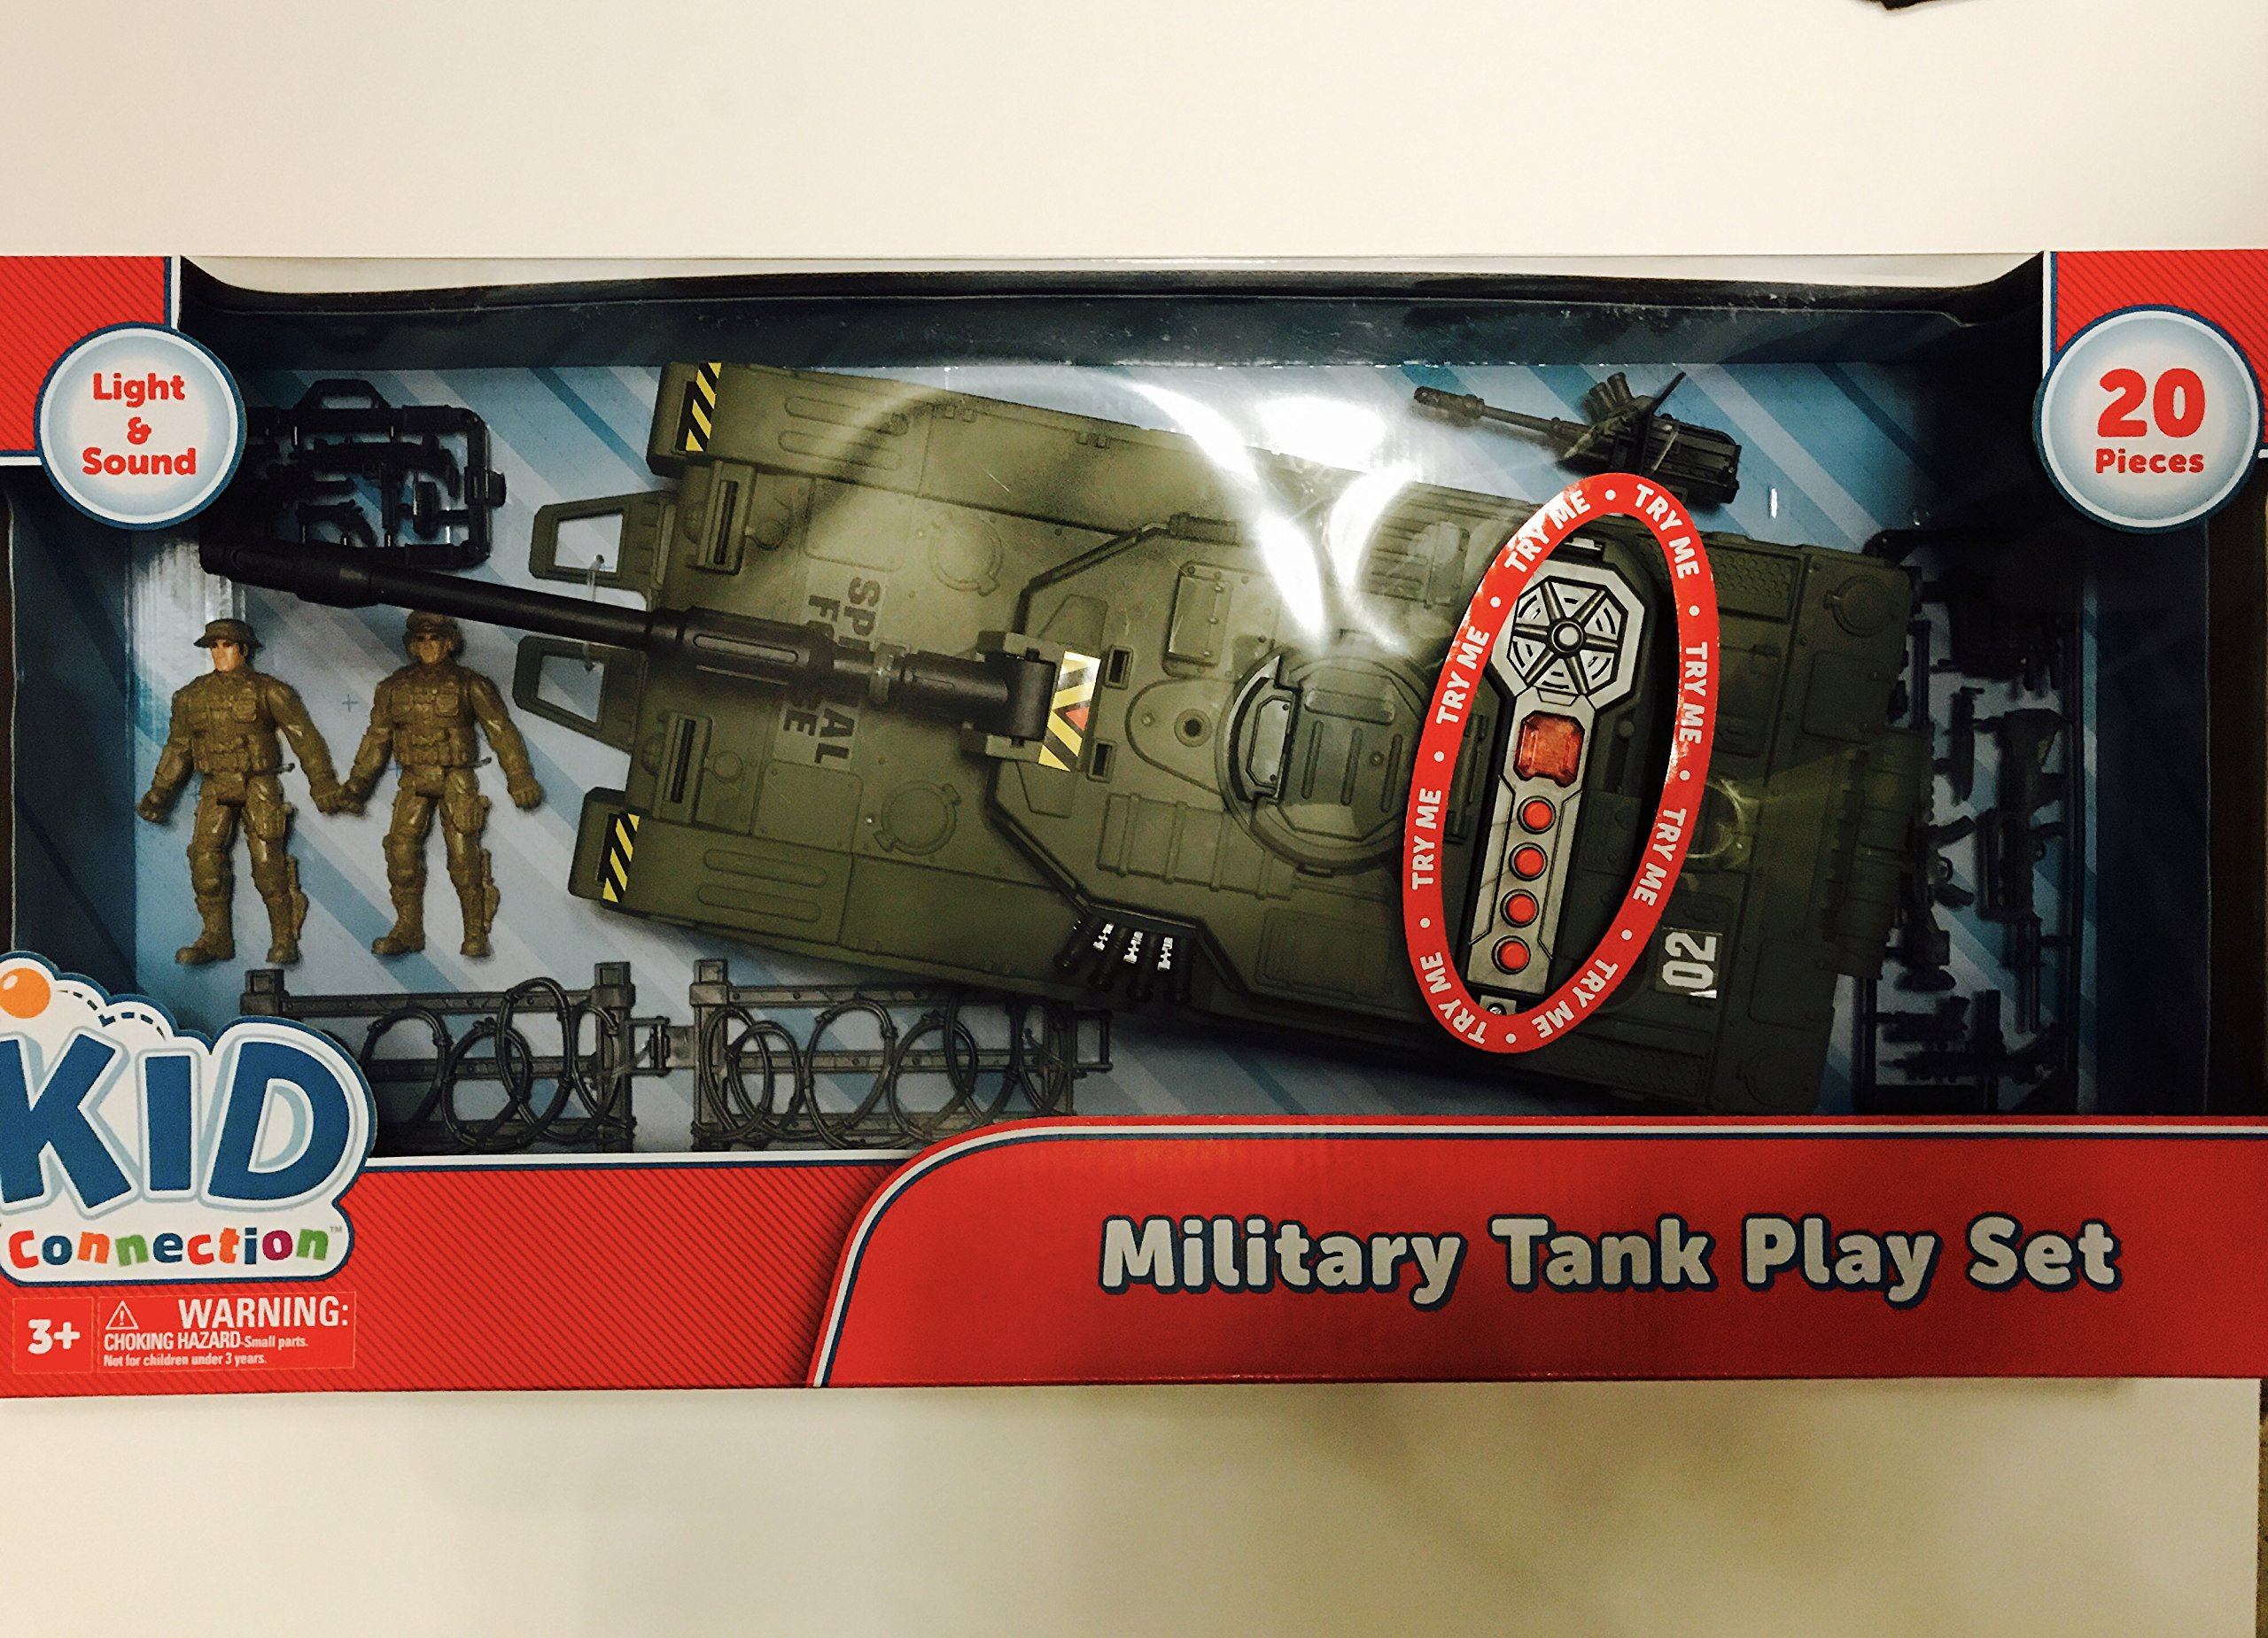 Kid Connection Military Tank Playset